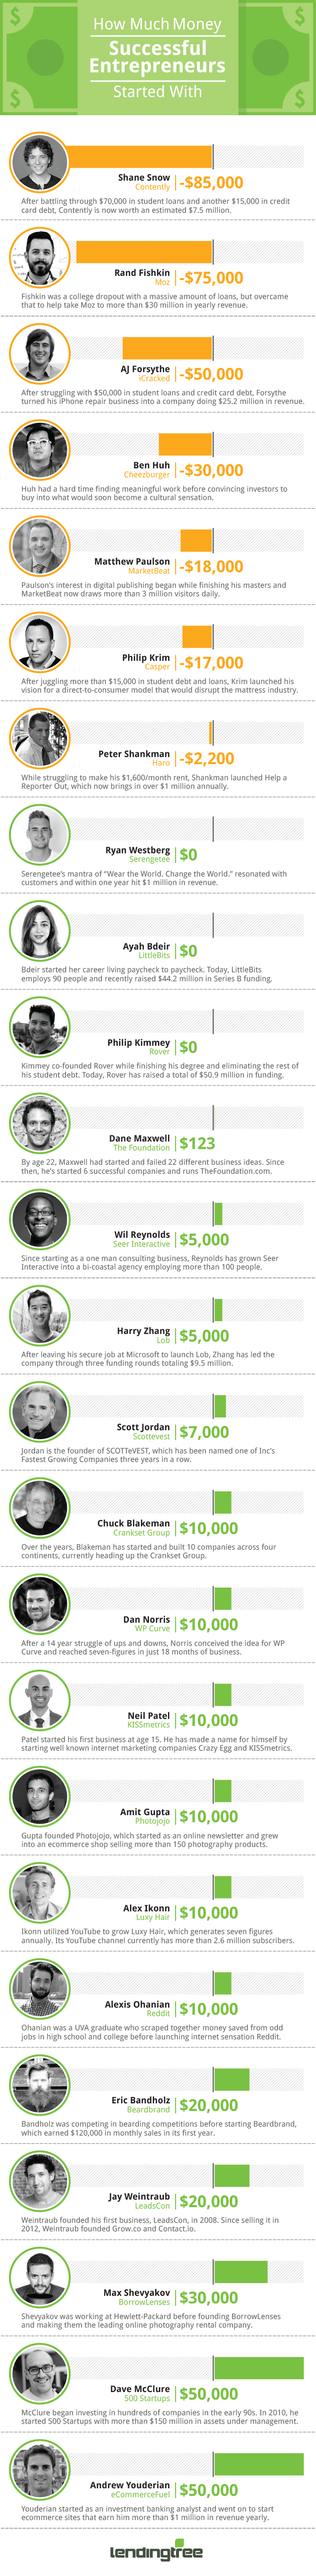 How-Much-Money-Entrepreneurs-Started-With